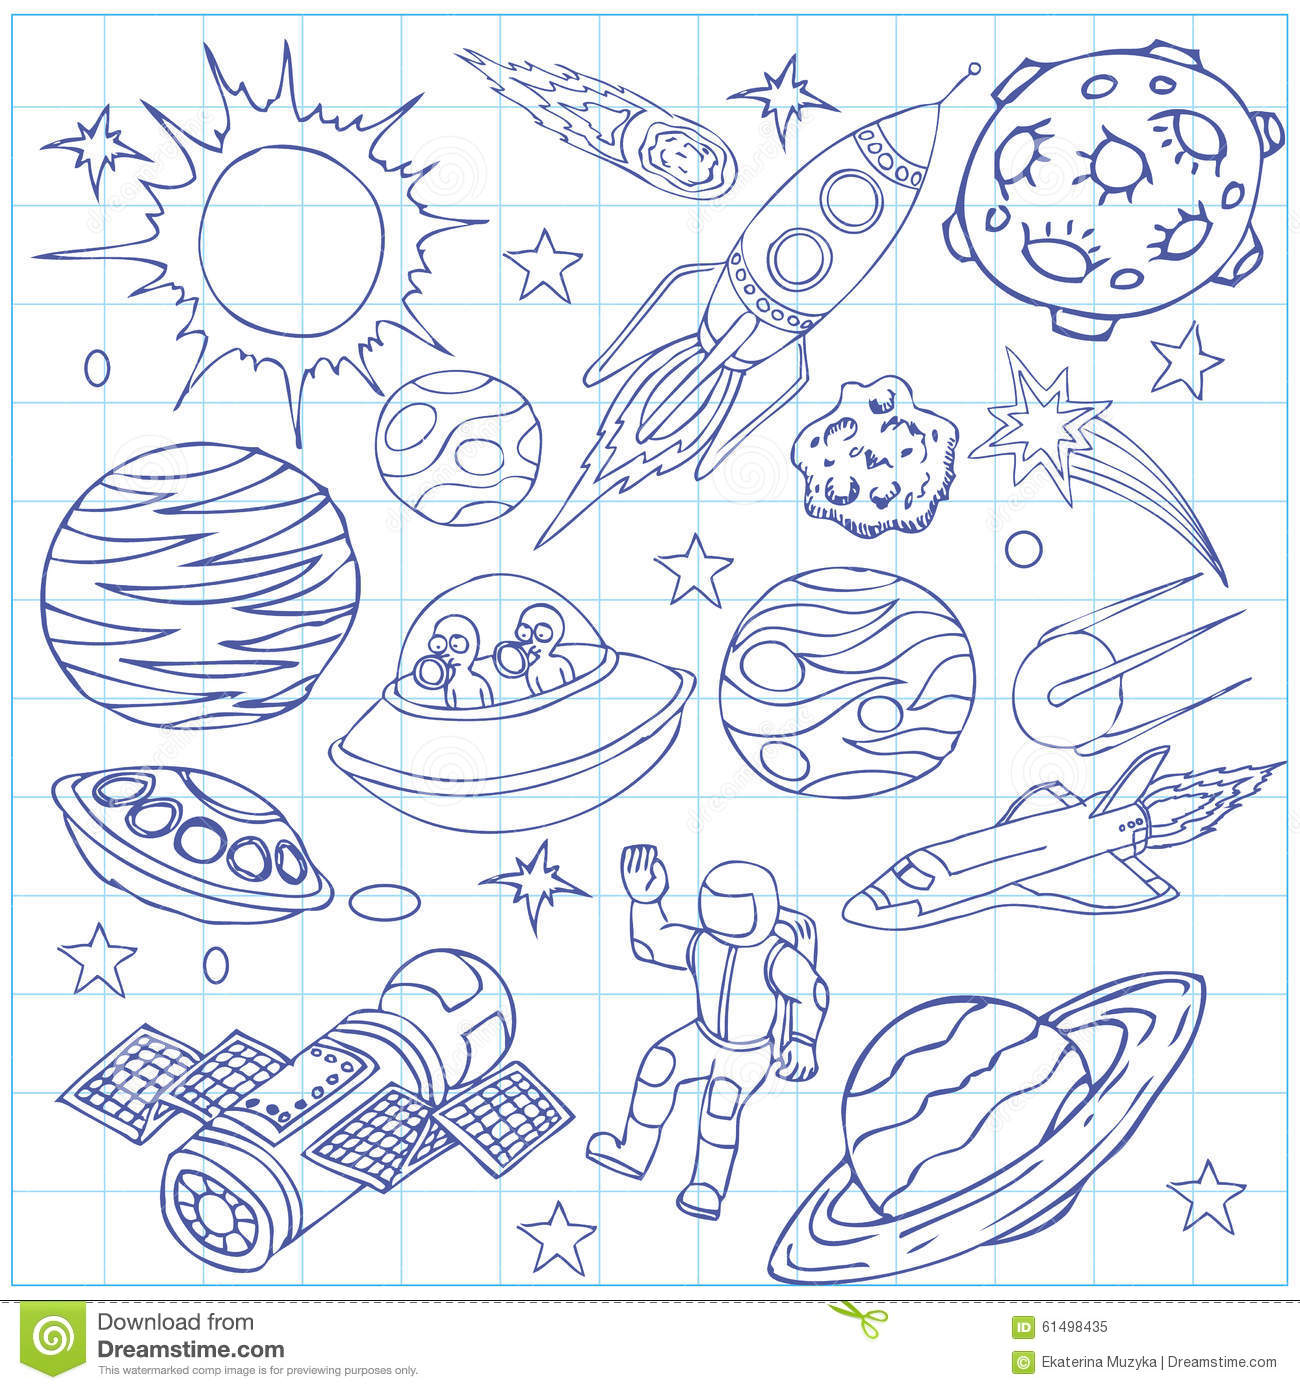 astronomy doodles - photo #17